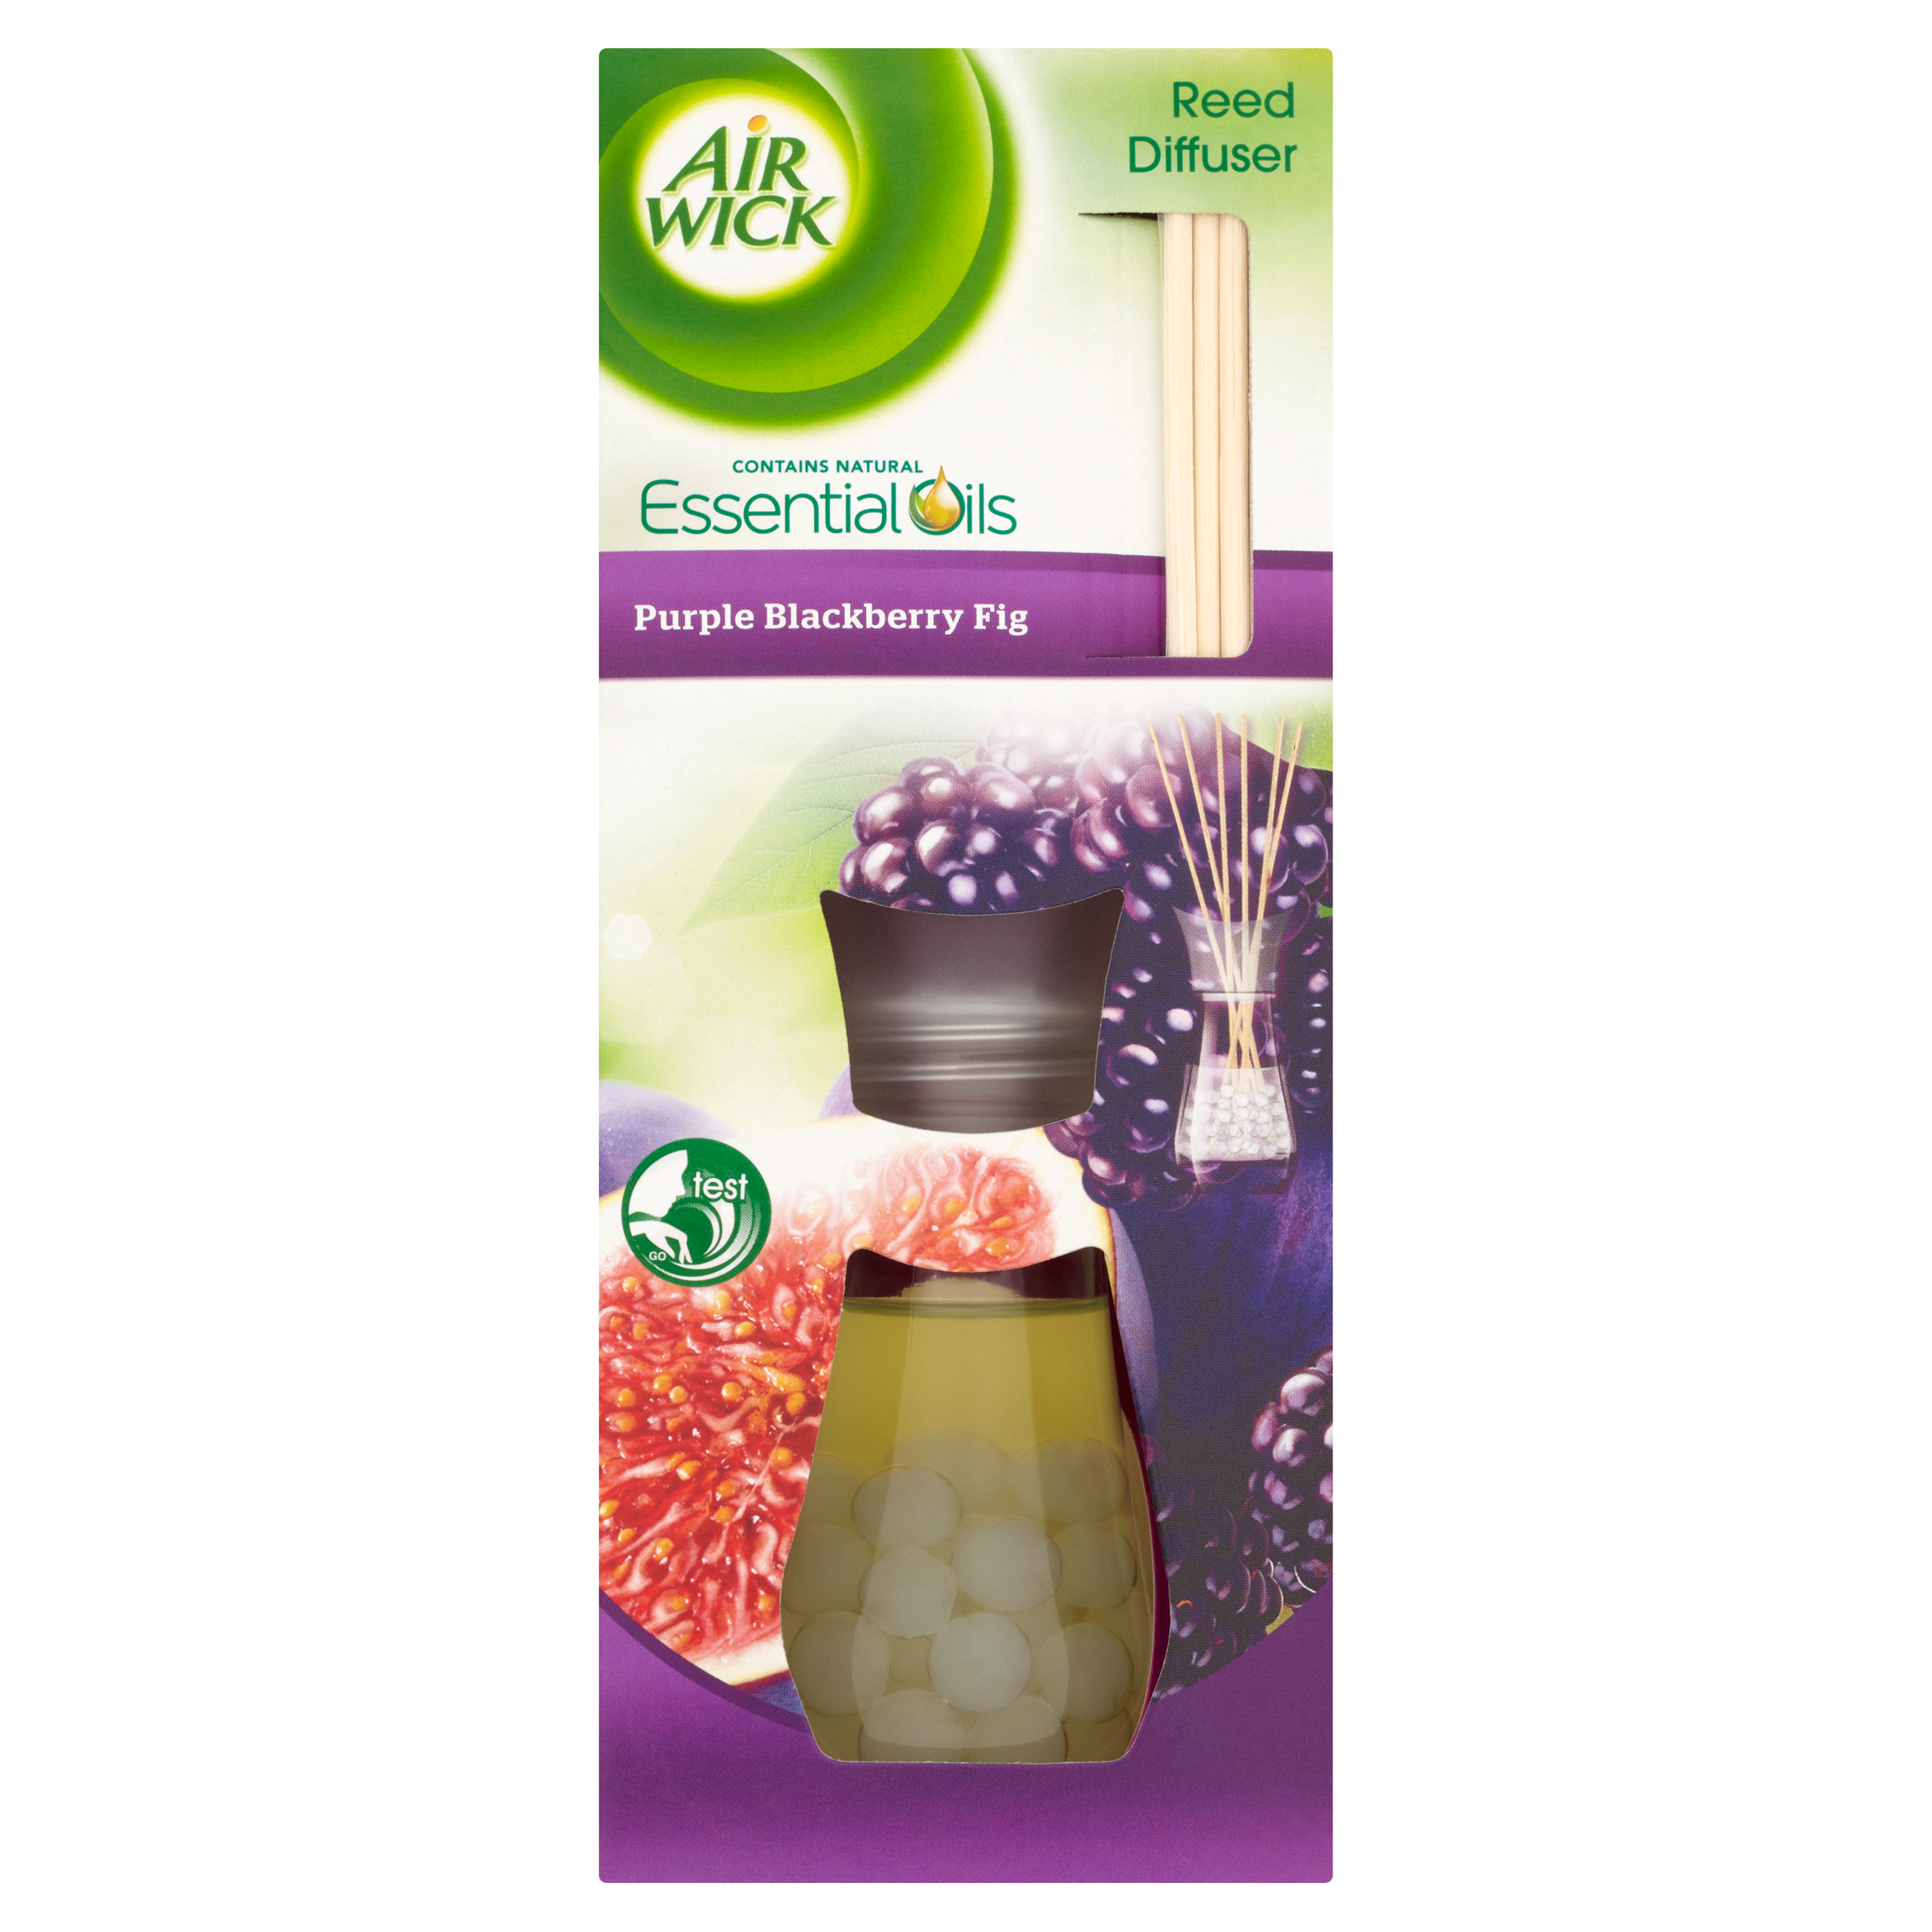 Air Wick 174 Reed Diffuser Purple Blackberry Fig